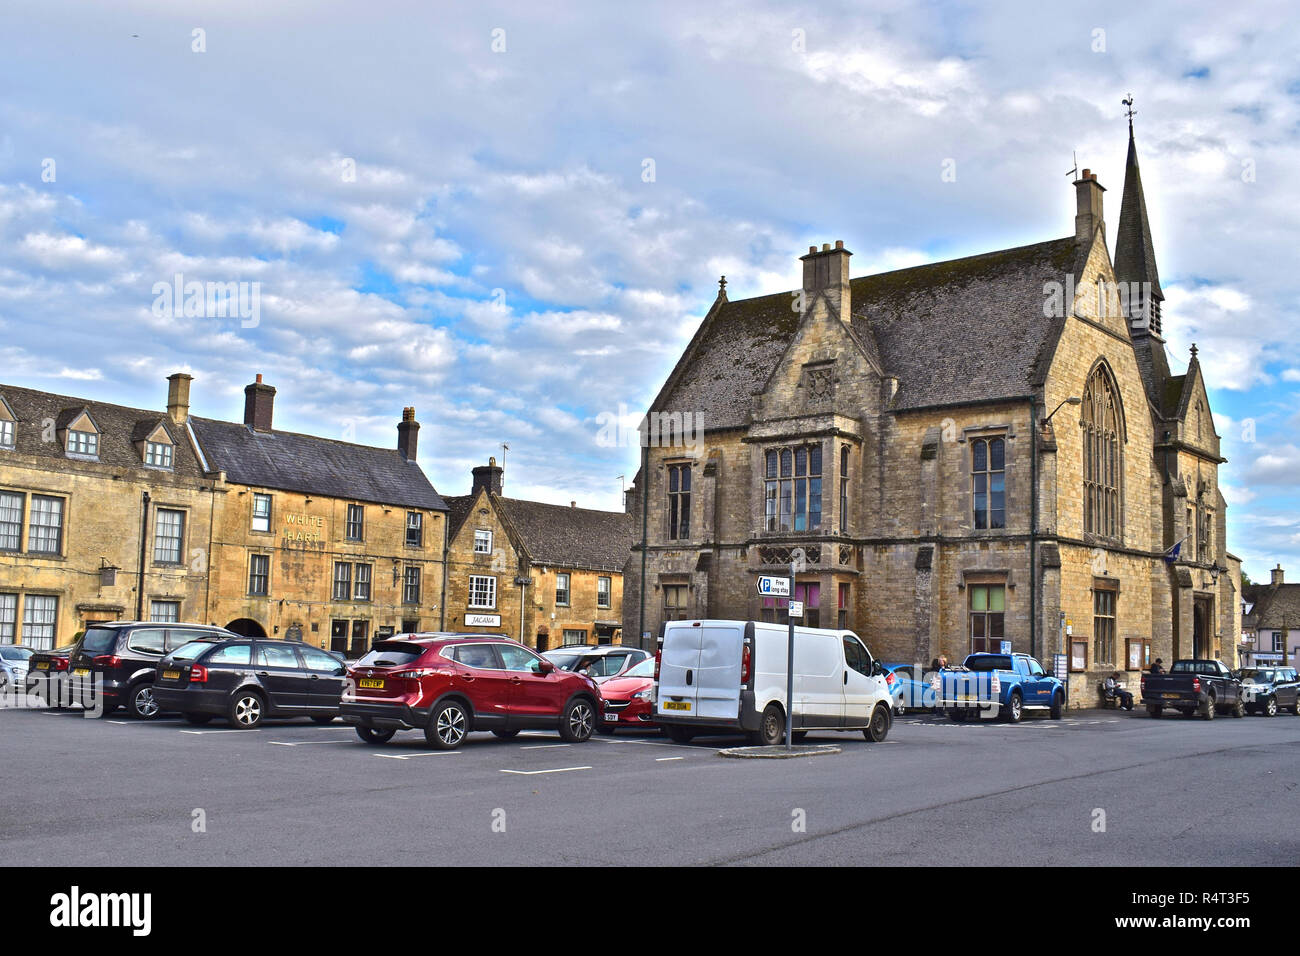 St Edwards Hall in the market square, also houses the local library and visitor centre in Stow-on-the-Wold,Cotswolds,Gloucestershire Stock Photo